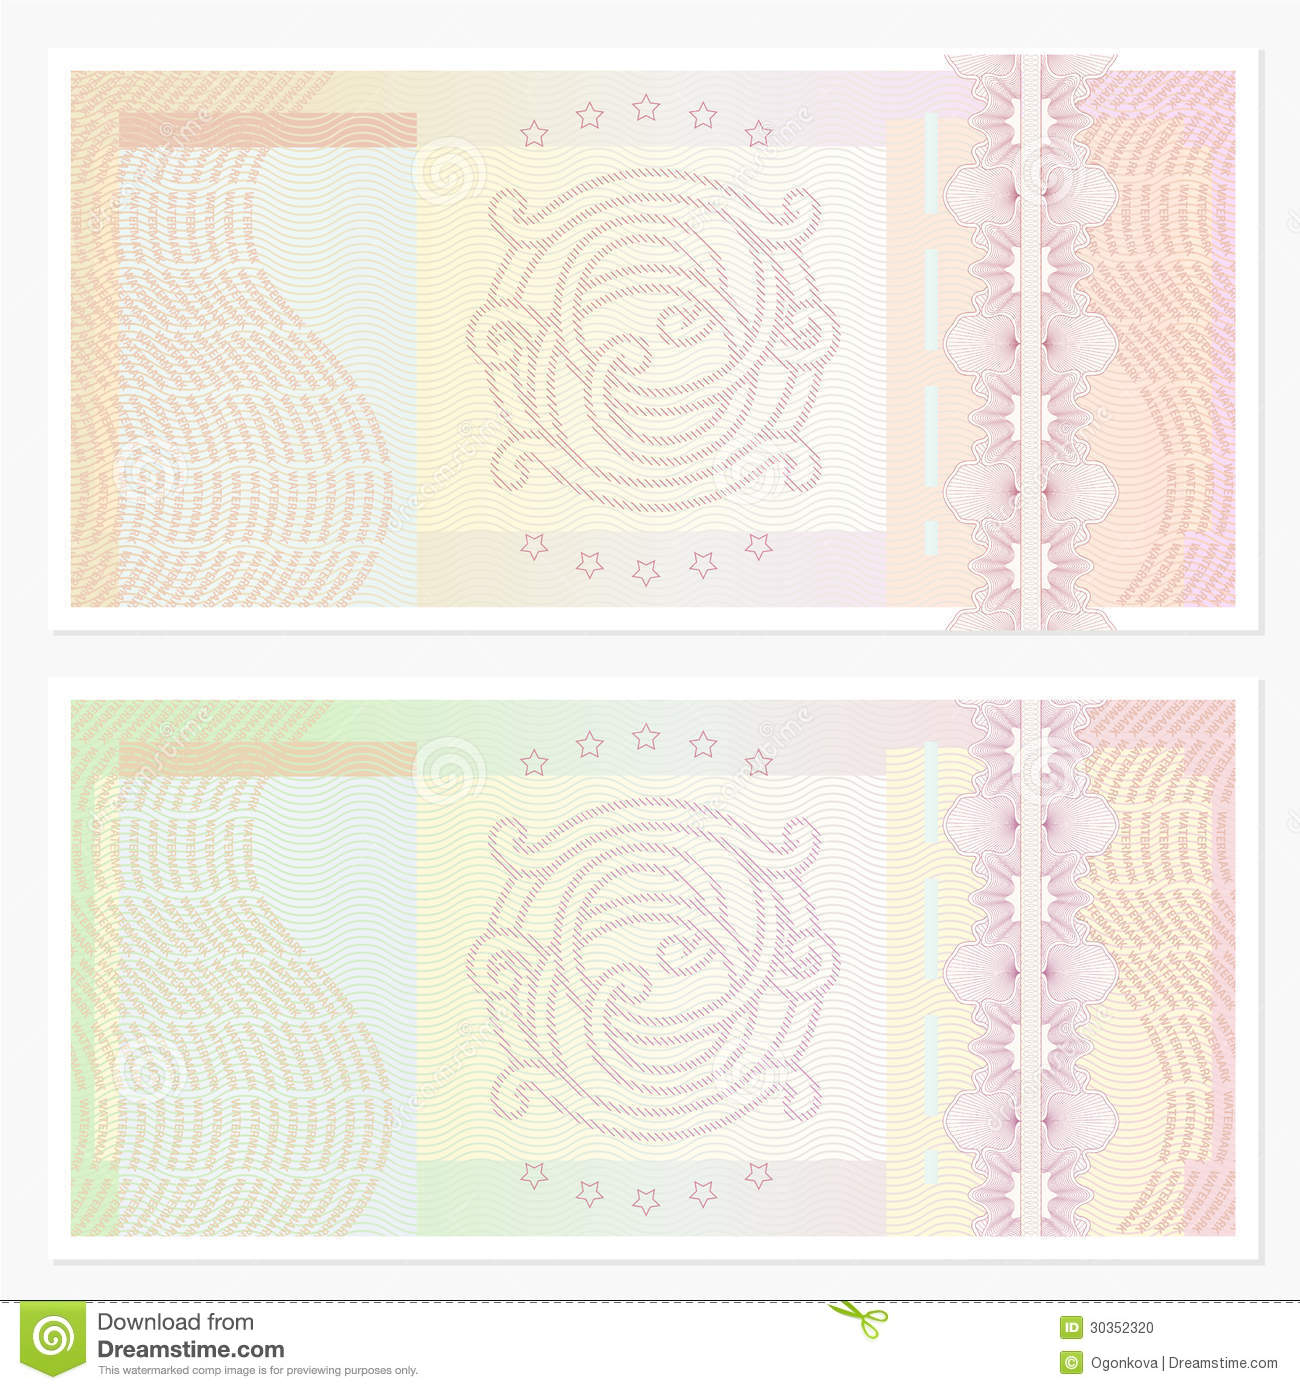 Voucher  coupon  Template With Guilloche Pattern Stock